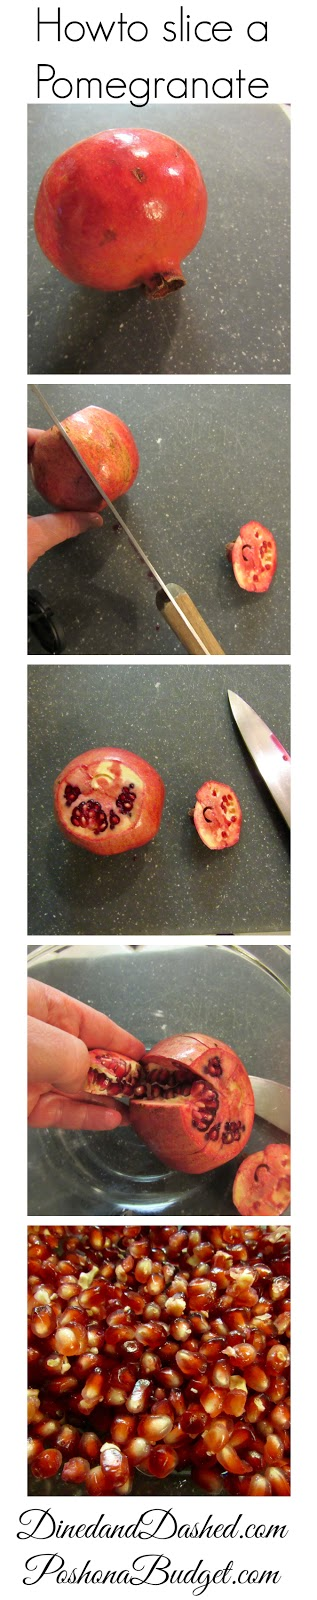 How to slice a Pomegranate